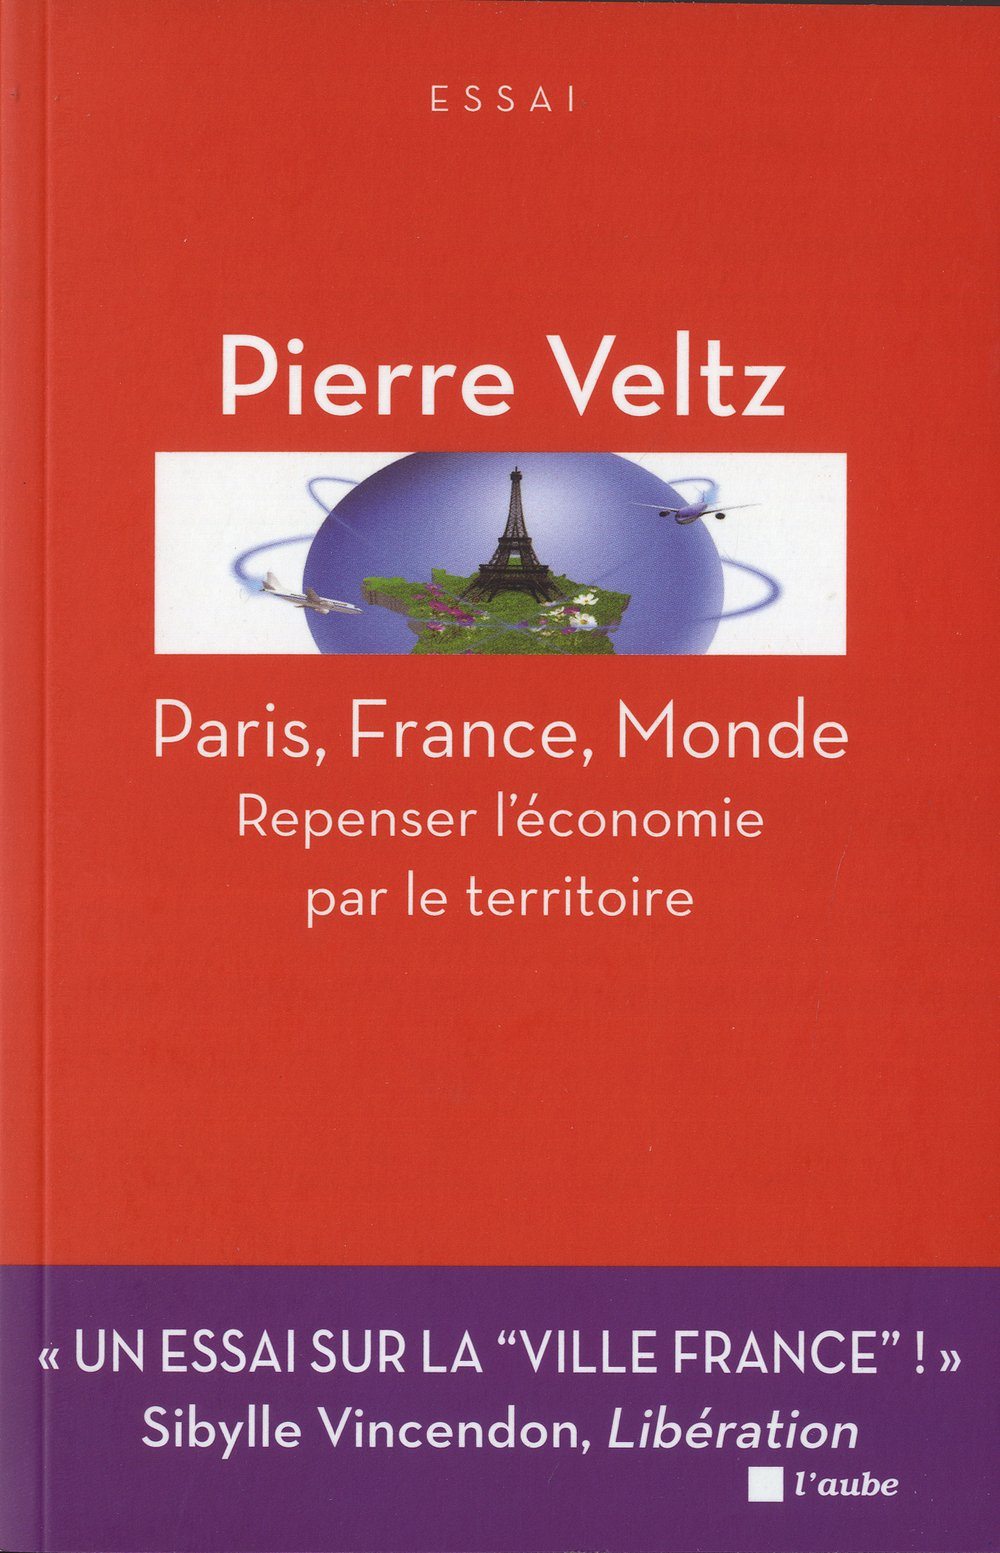 Vignette document Paris, France, Monde. Repenser l'économie par le territoire